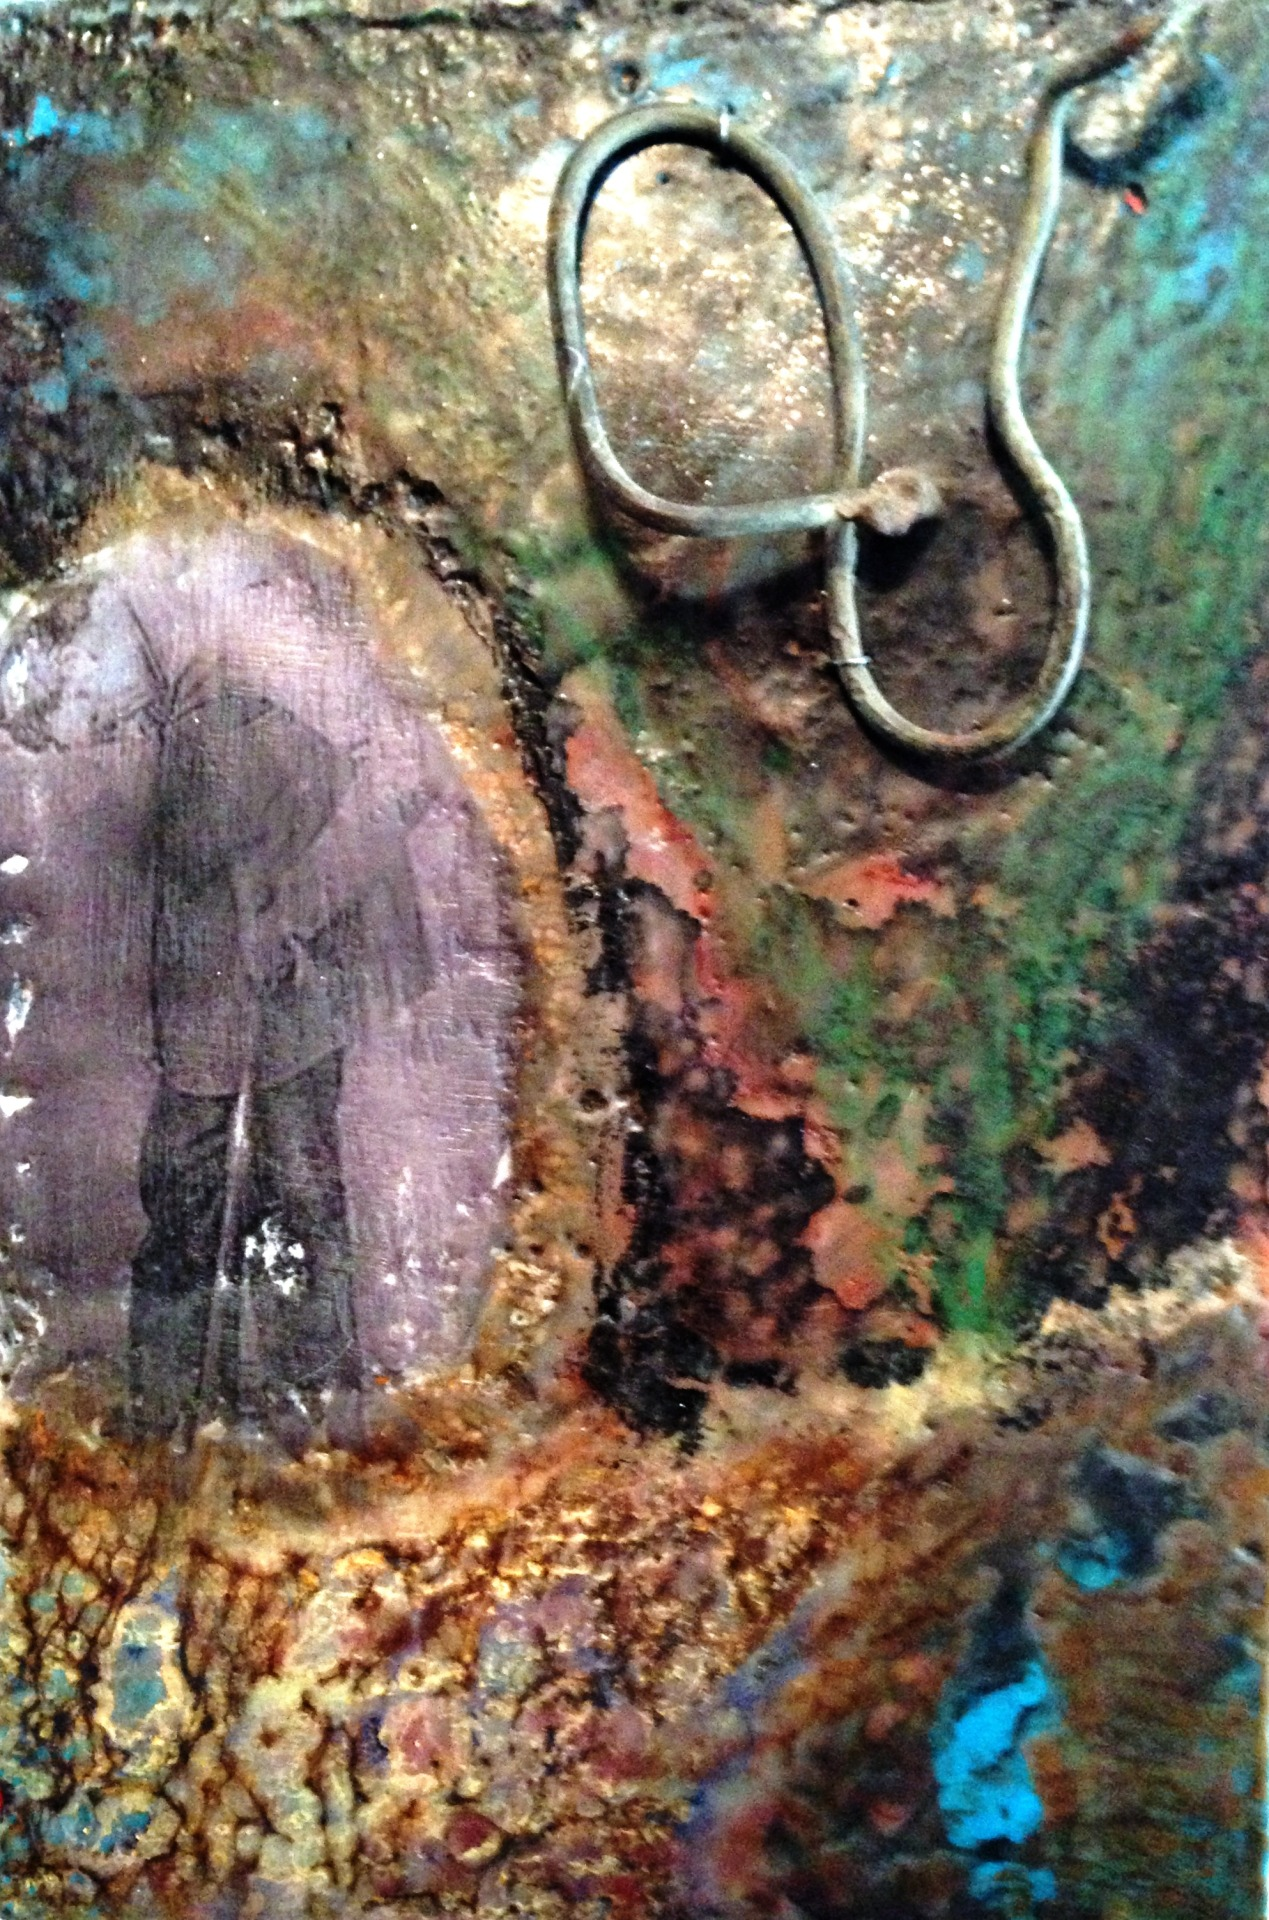 leonard trask 2012 12×8 $125 encaustic and found objects on birch panelView Post